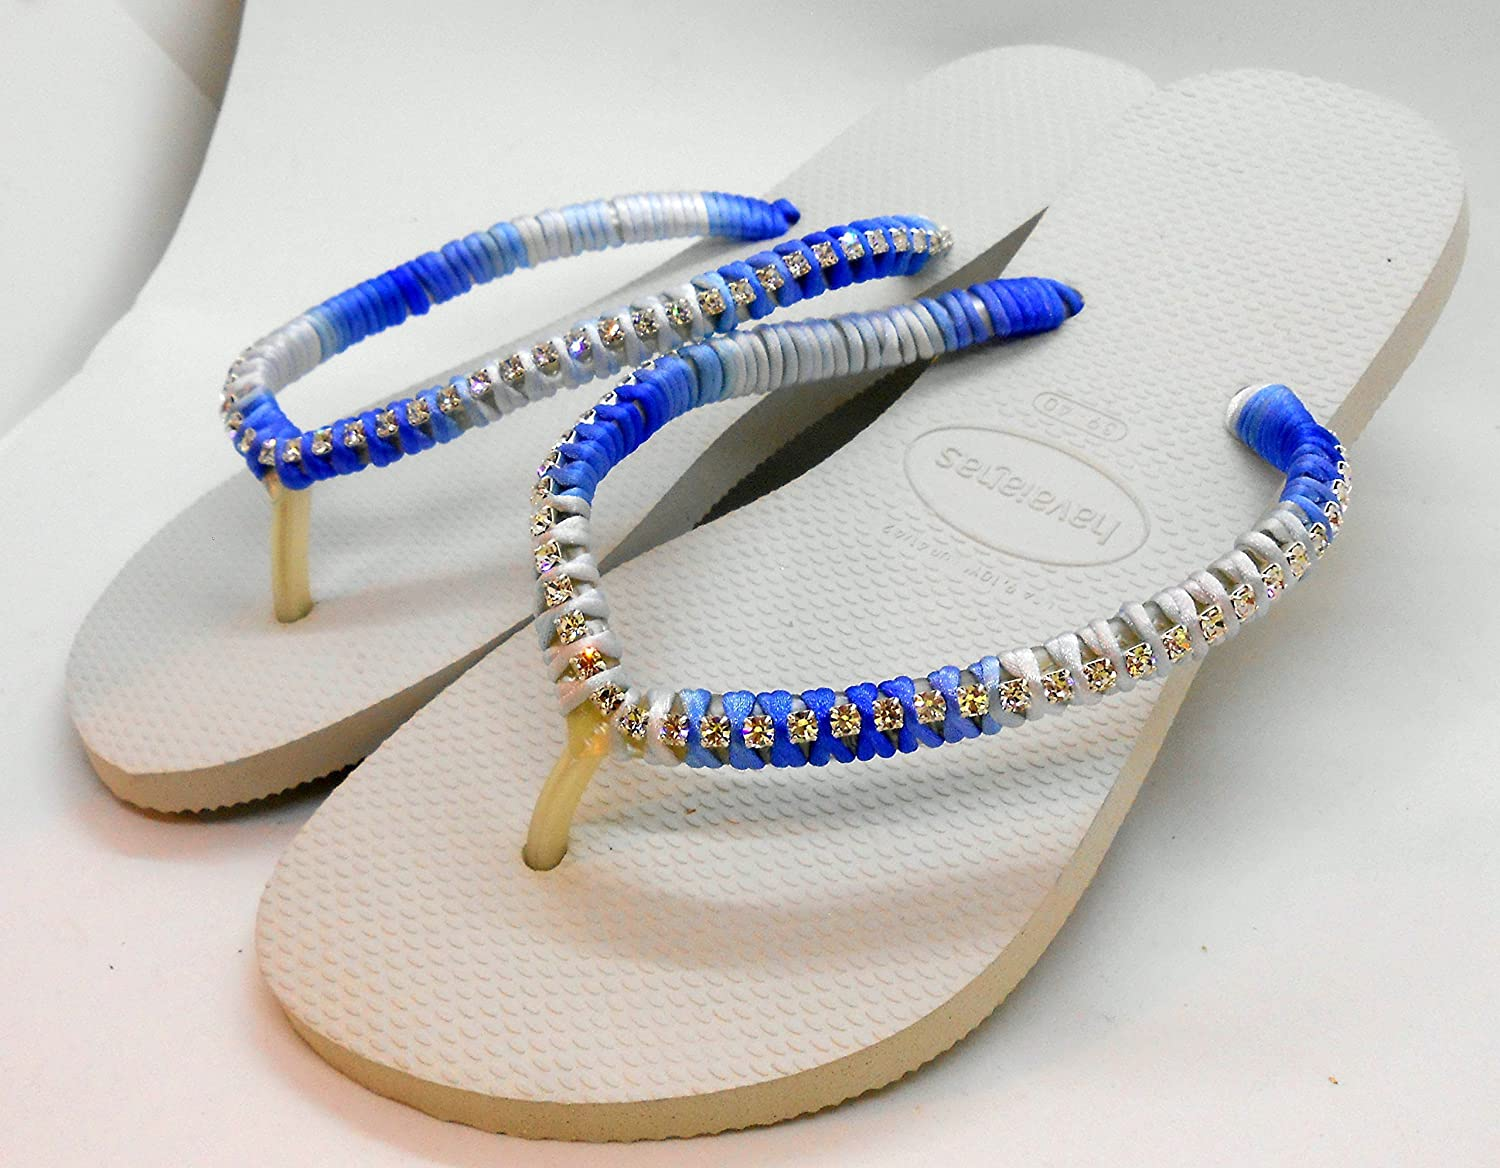 b327bbba8 My unique Design Black White Women s Havaianas Sandals Flat Shoes Beach  Flip Flops Wedding Flip Flops Bridal Flat Shoes Multi Blue color Cord and  Clear ...